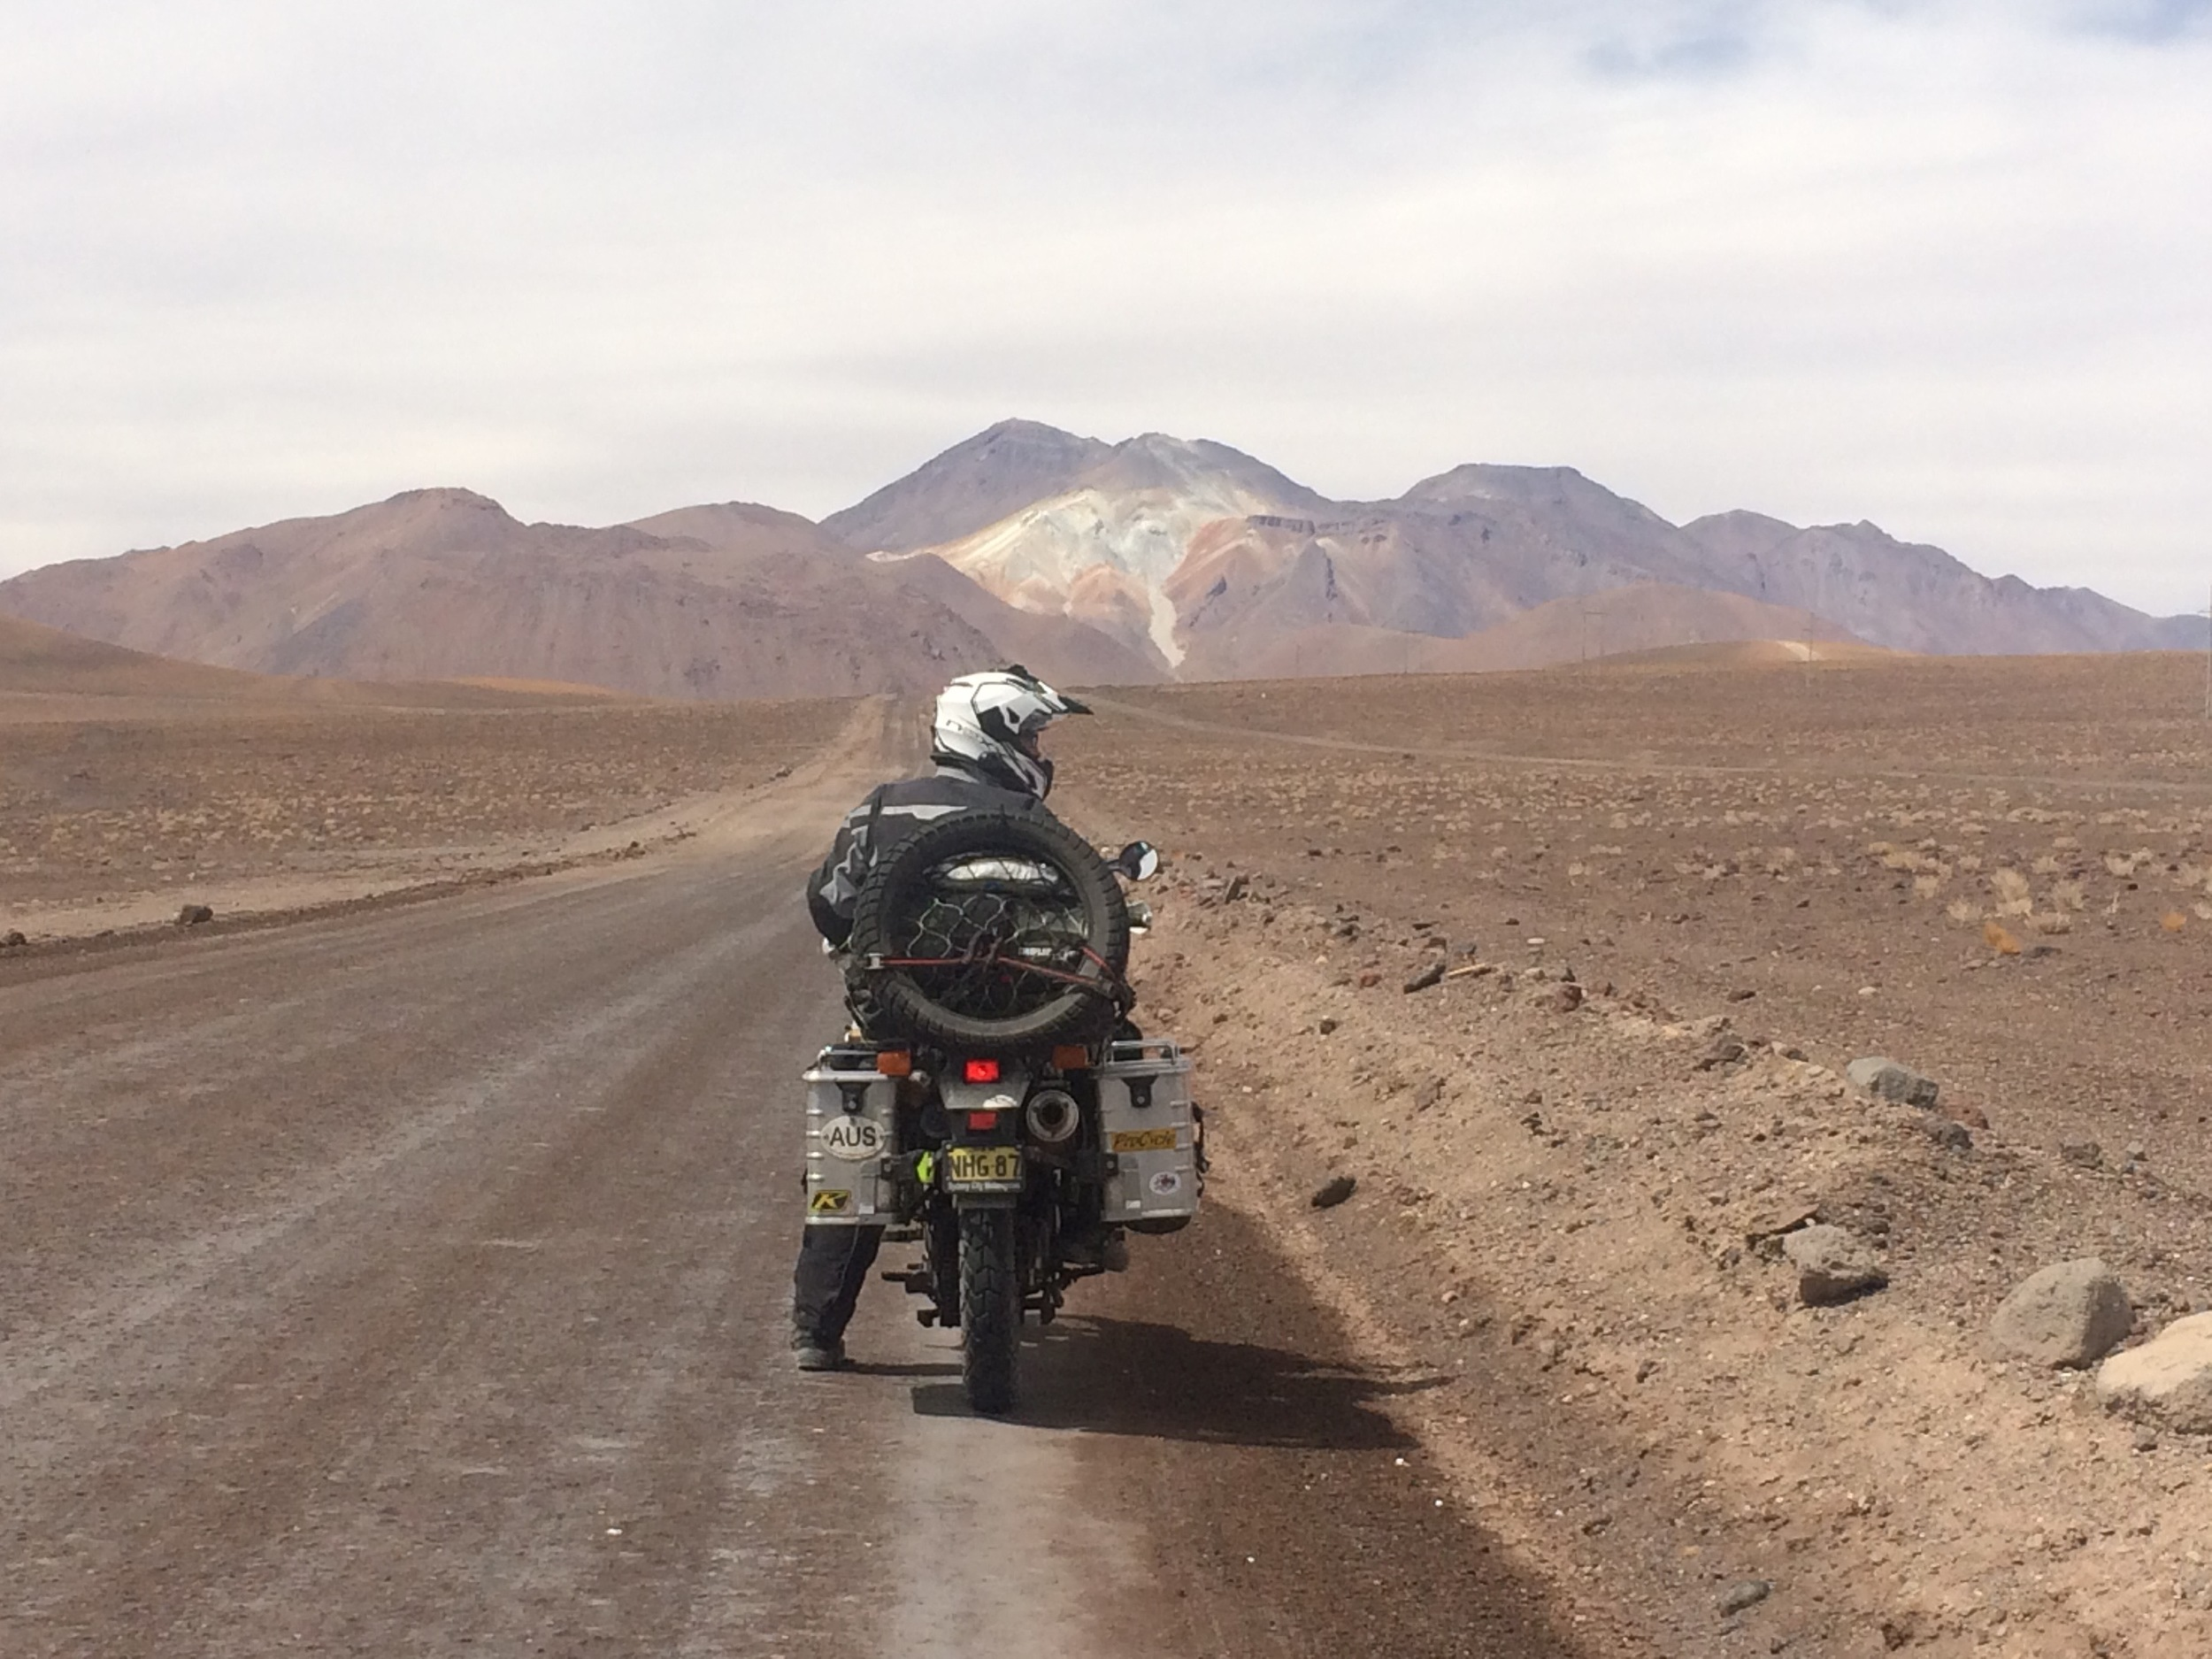 On the road to Uyuni, Bolivia. Old volcano in the background.